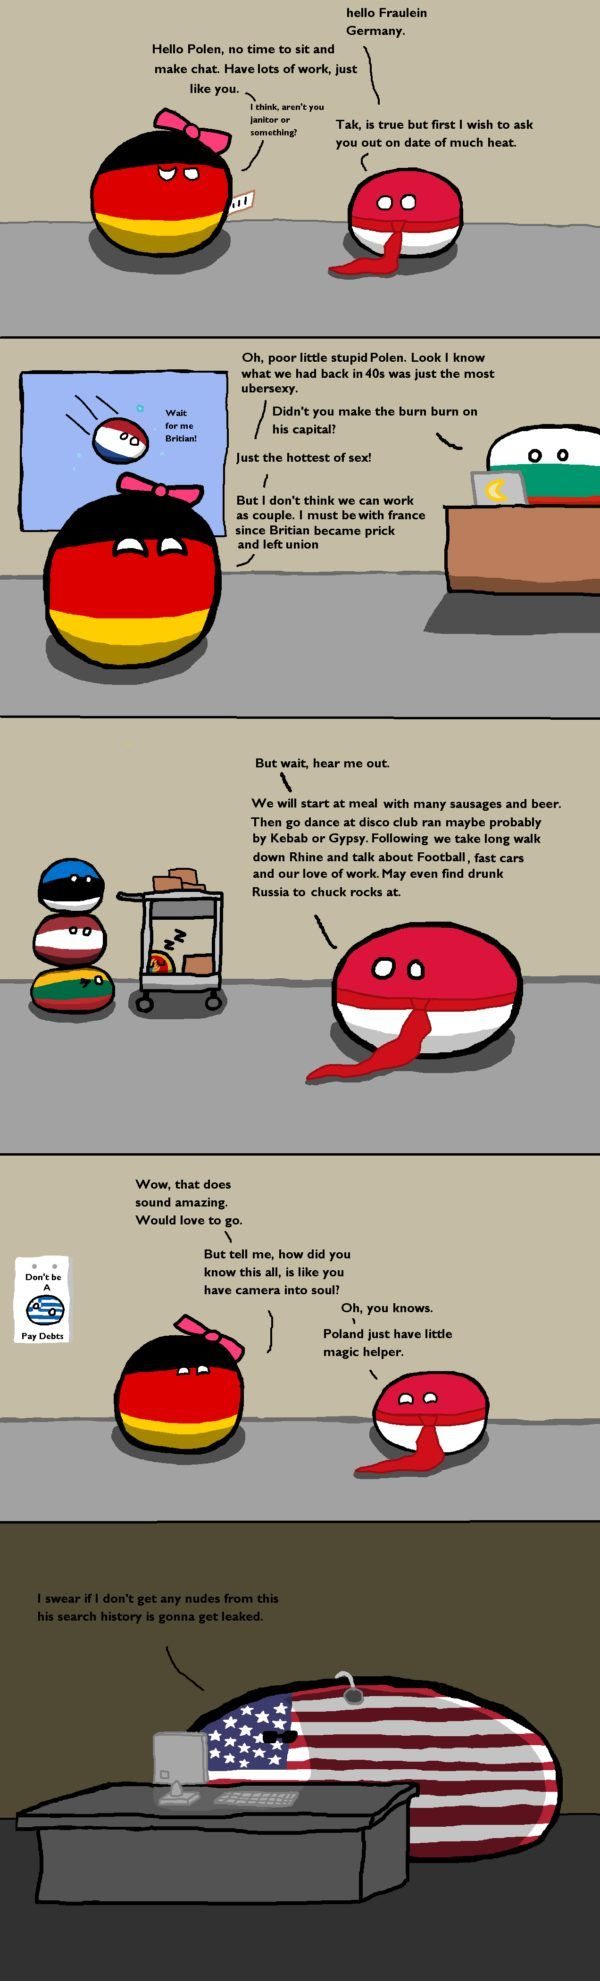 Poland asks Germany on a date of much heat | Polandball Comics